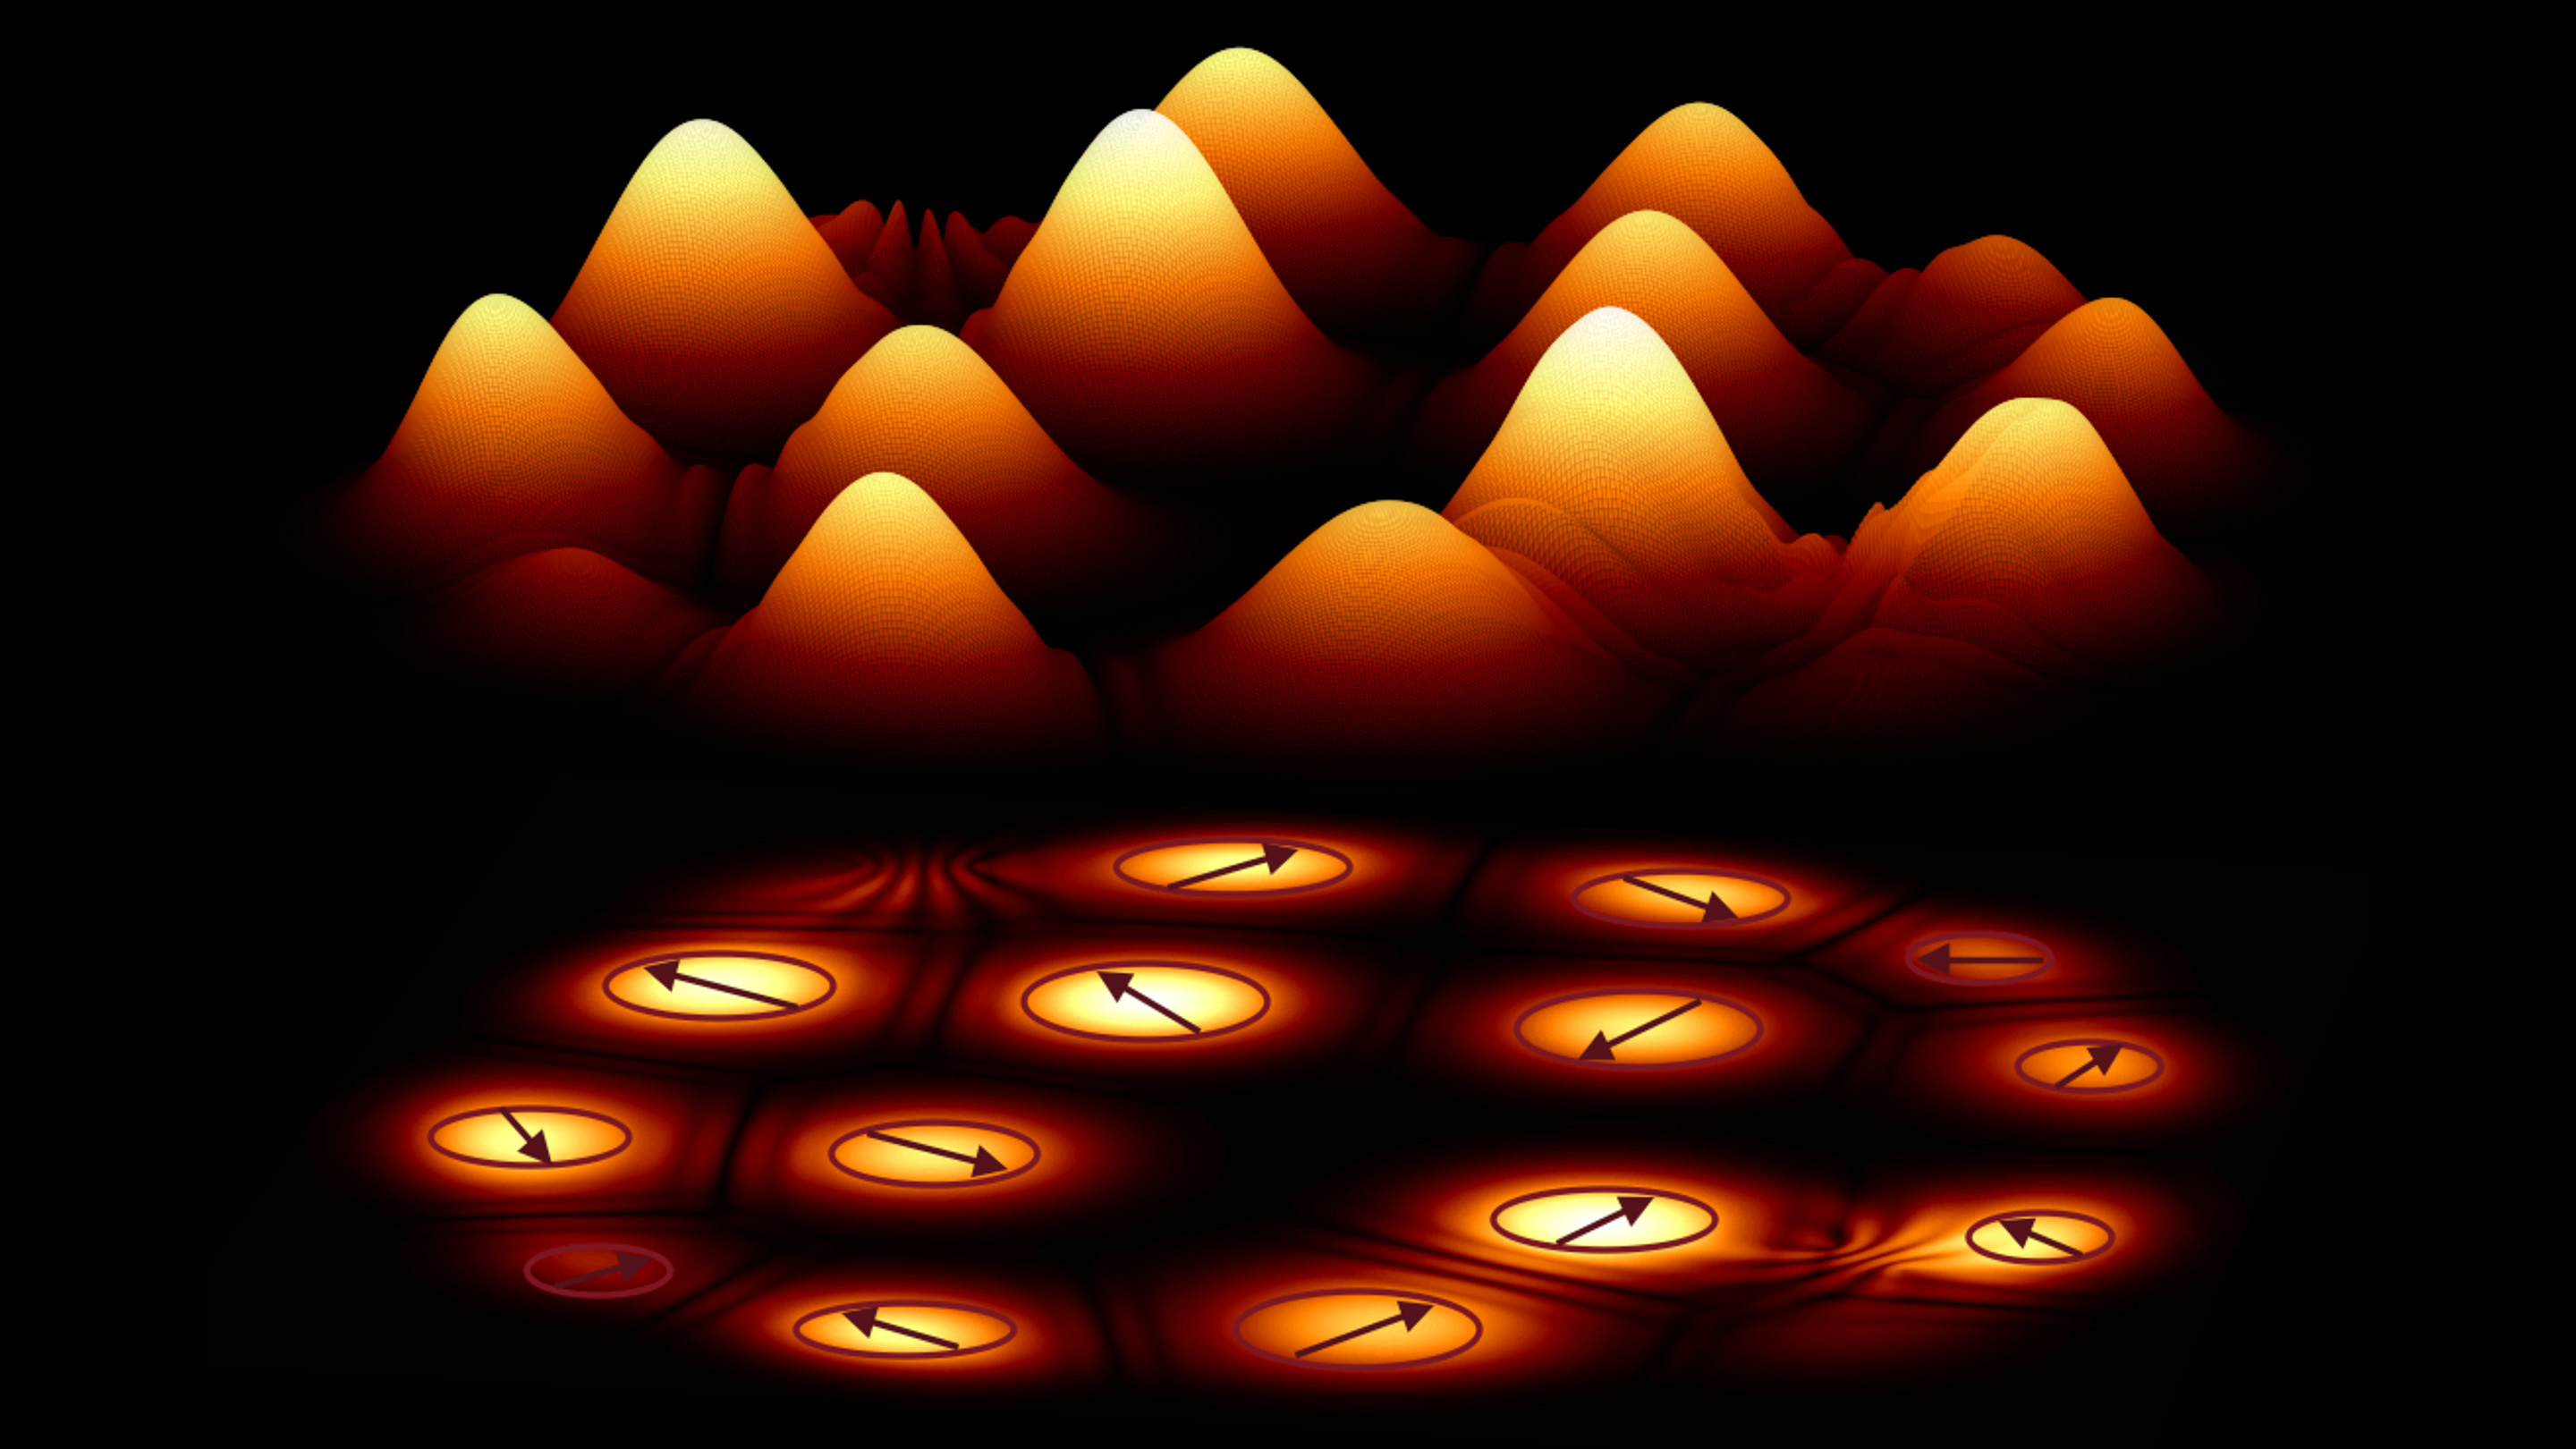 Orange hills (polaritons) against a black background. Below each hill, an arrow points to an angular position on a circle.